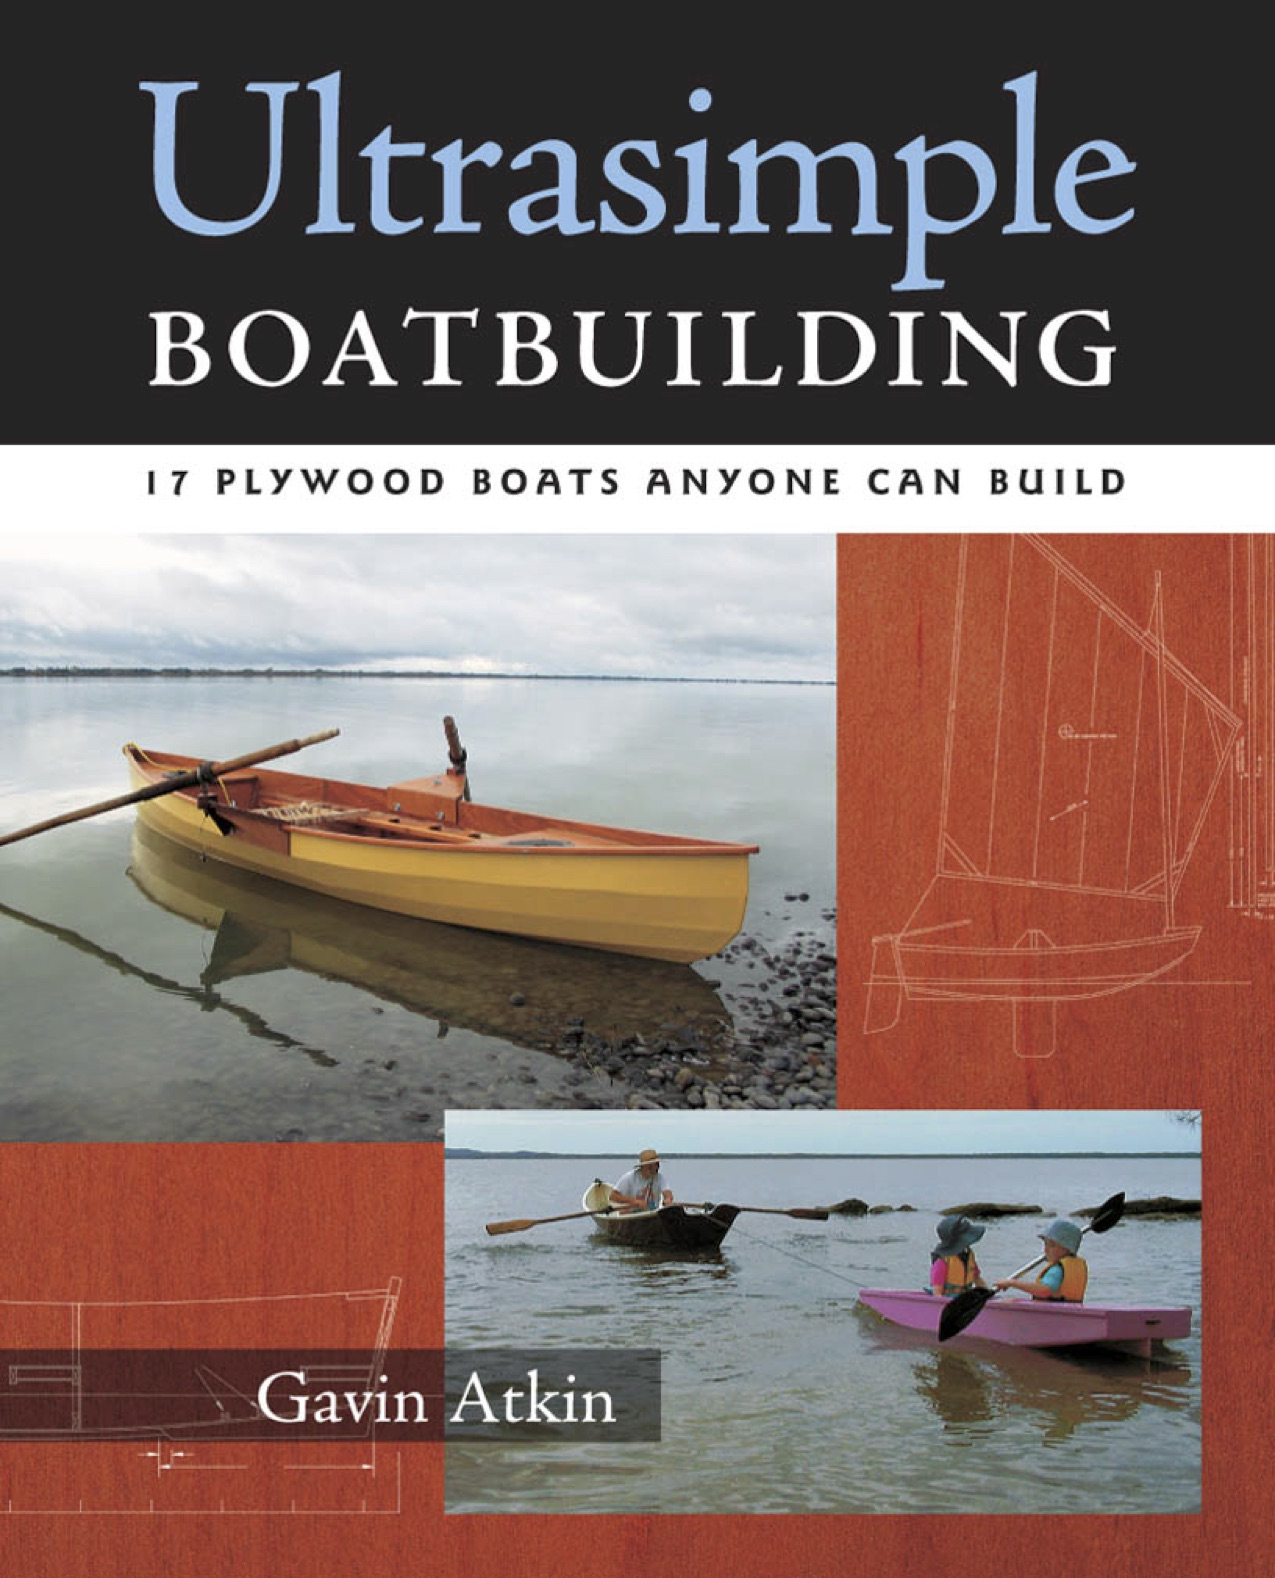 Ultrasimple Boat Building 17 Plywood Boats Anyone Can Build